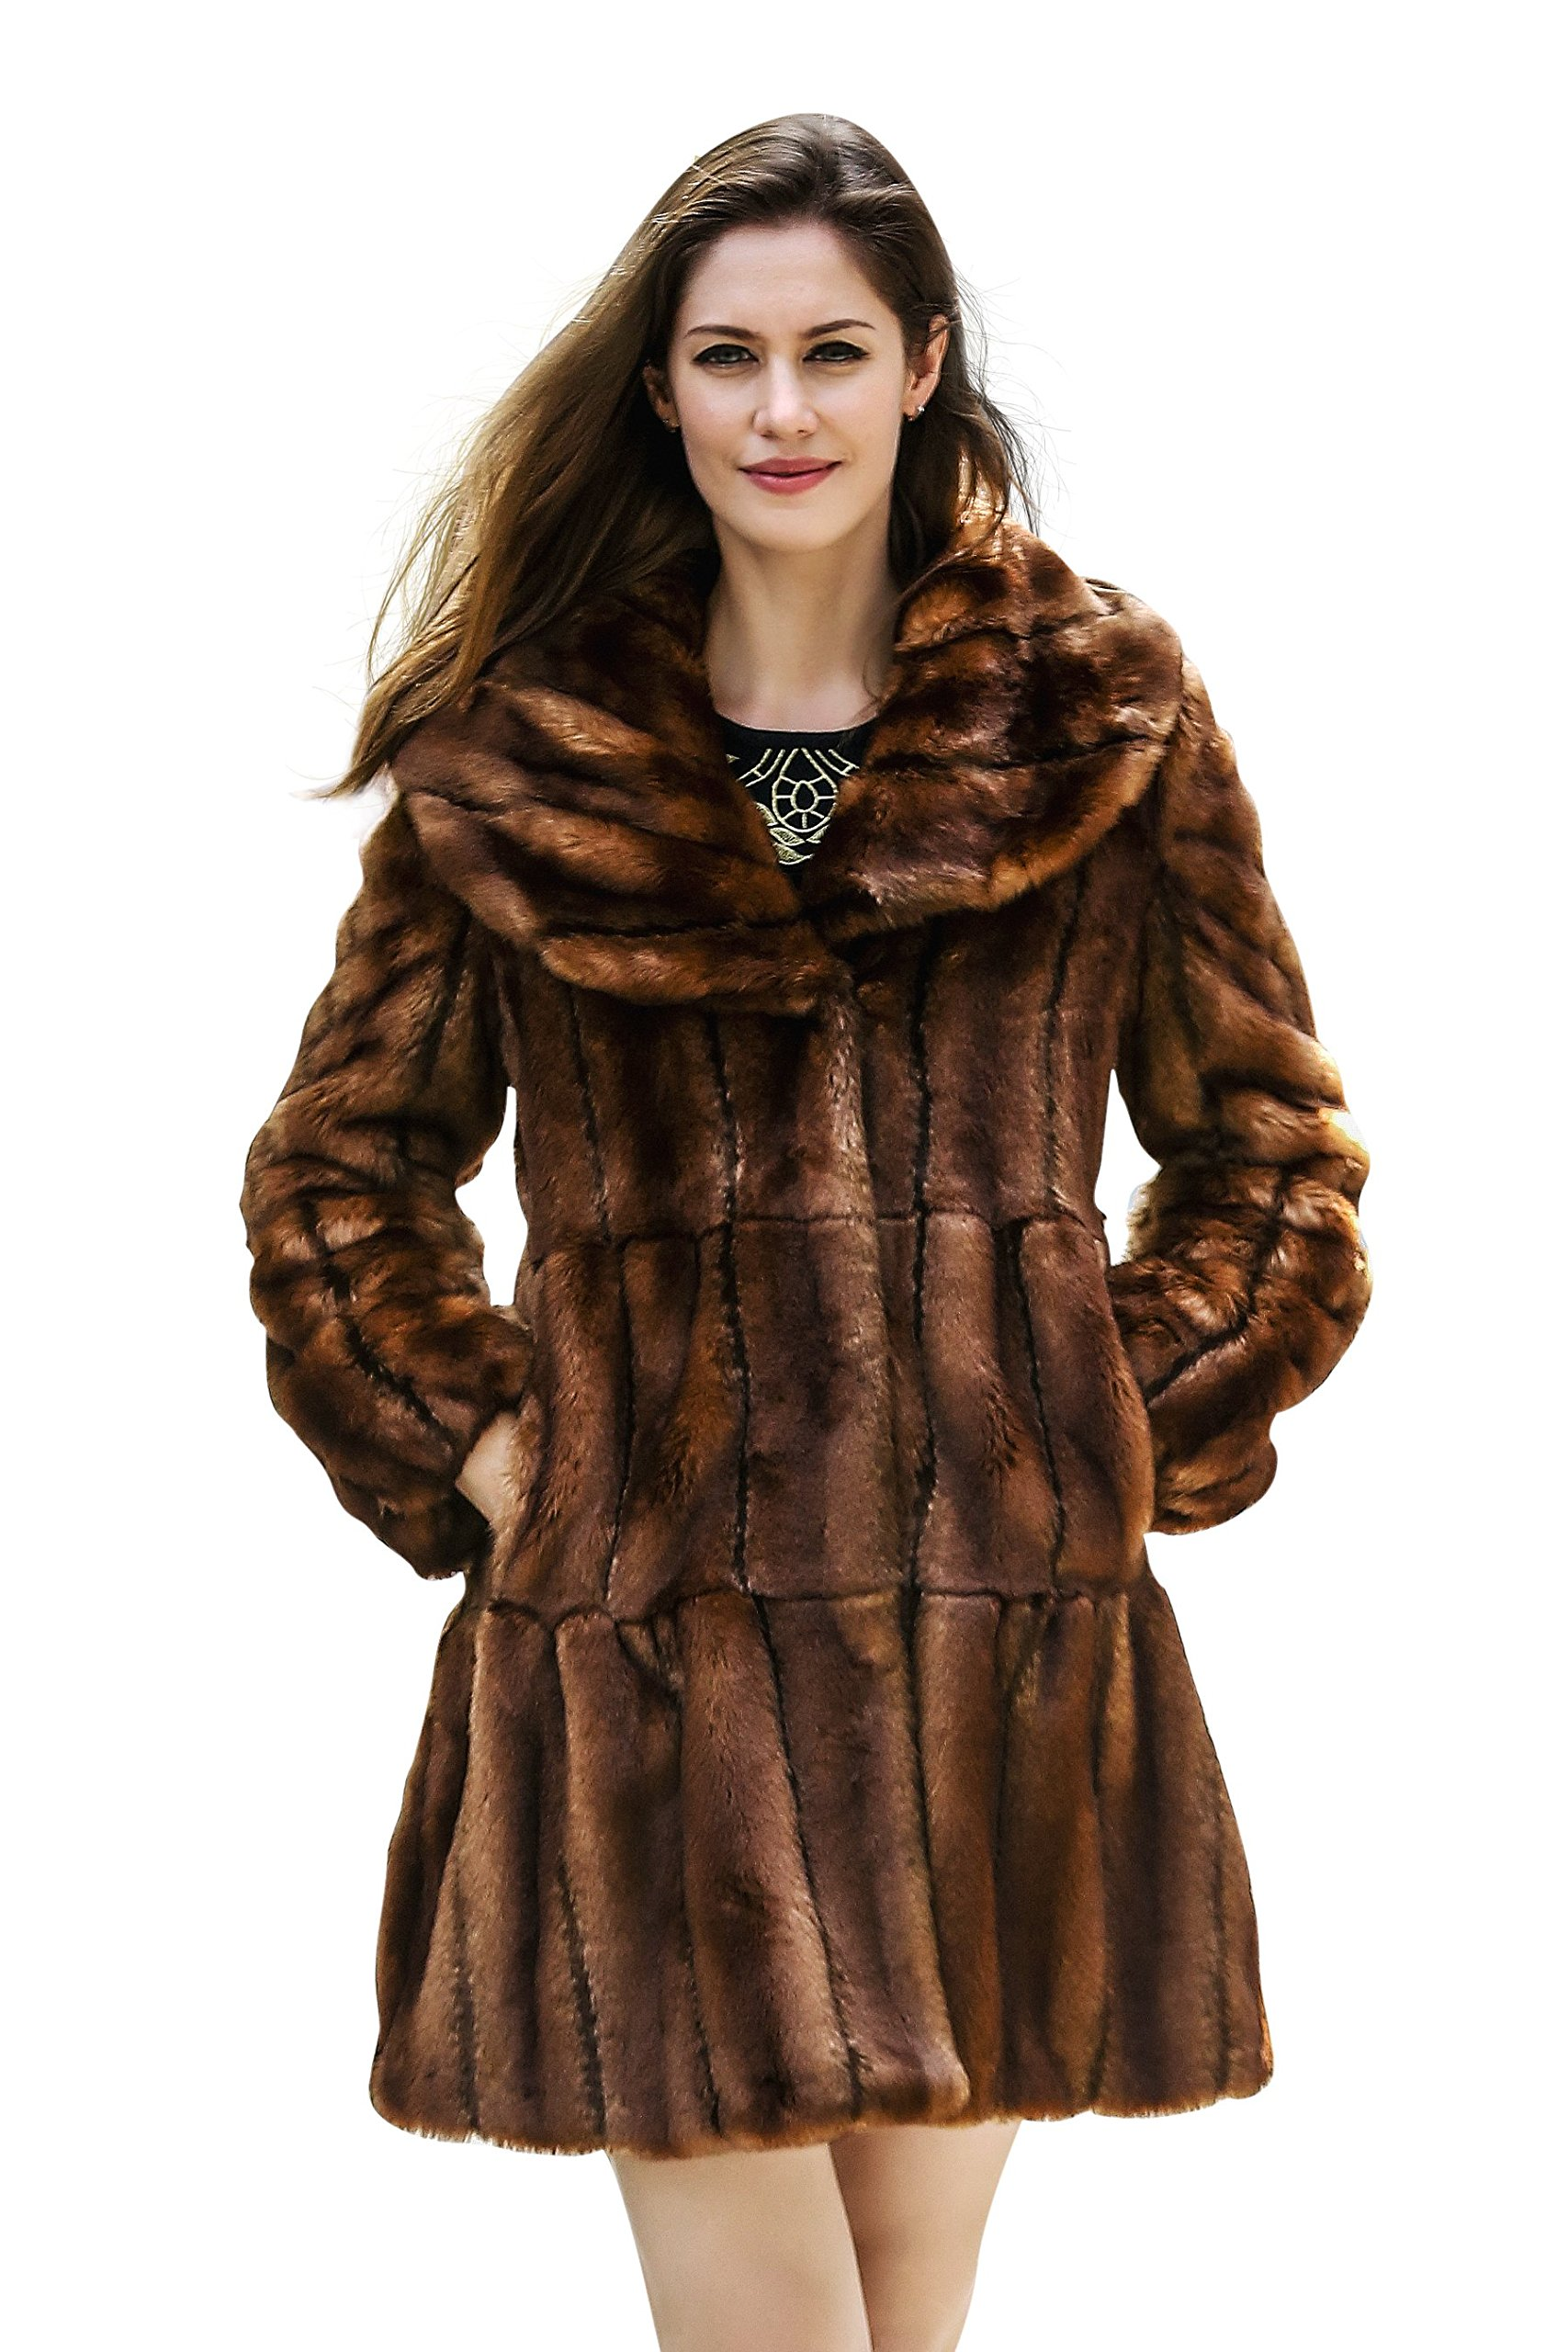 Adelaqueen Women's Vintage Brown Style Luxury Faux Fur Coat with Lotus Ruffle Collar M